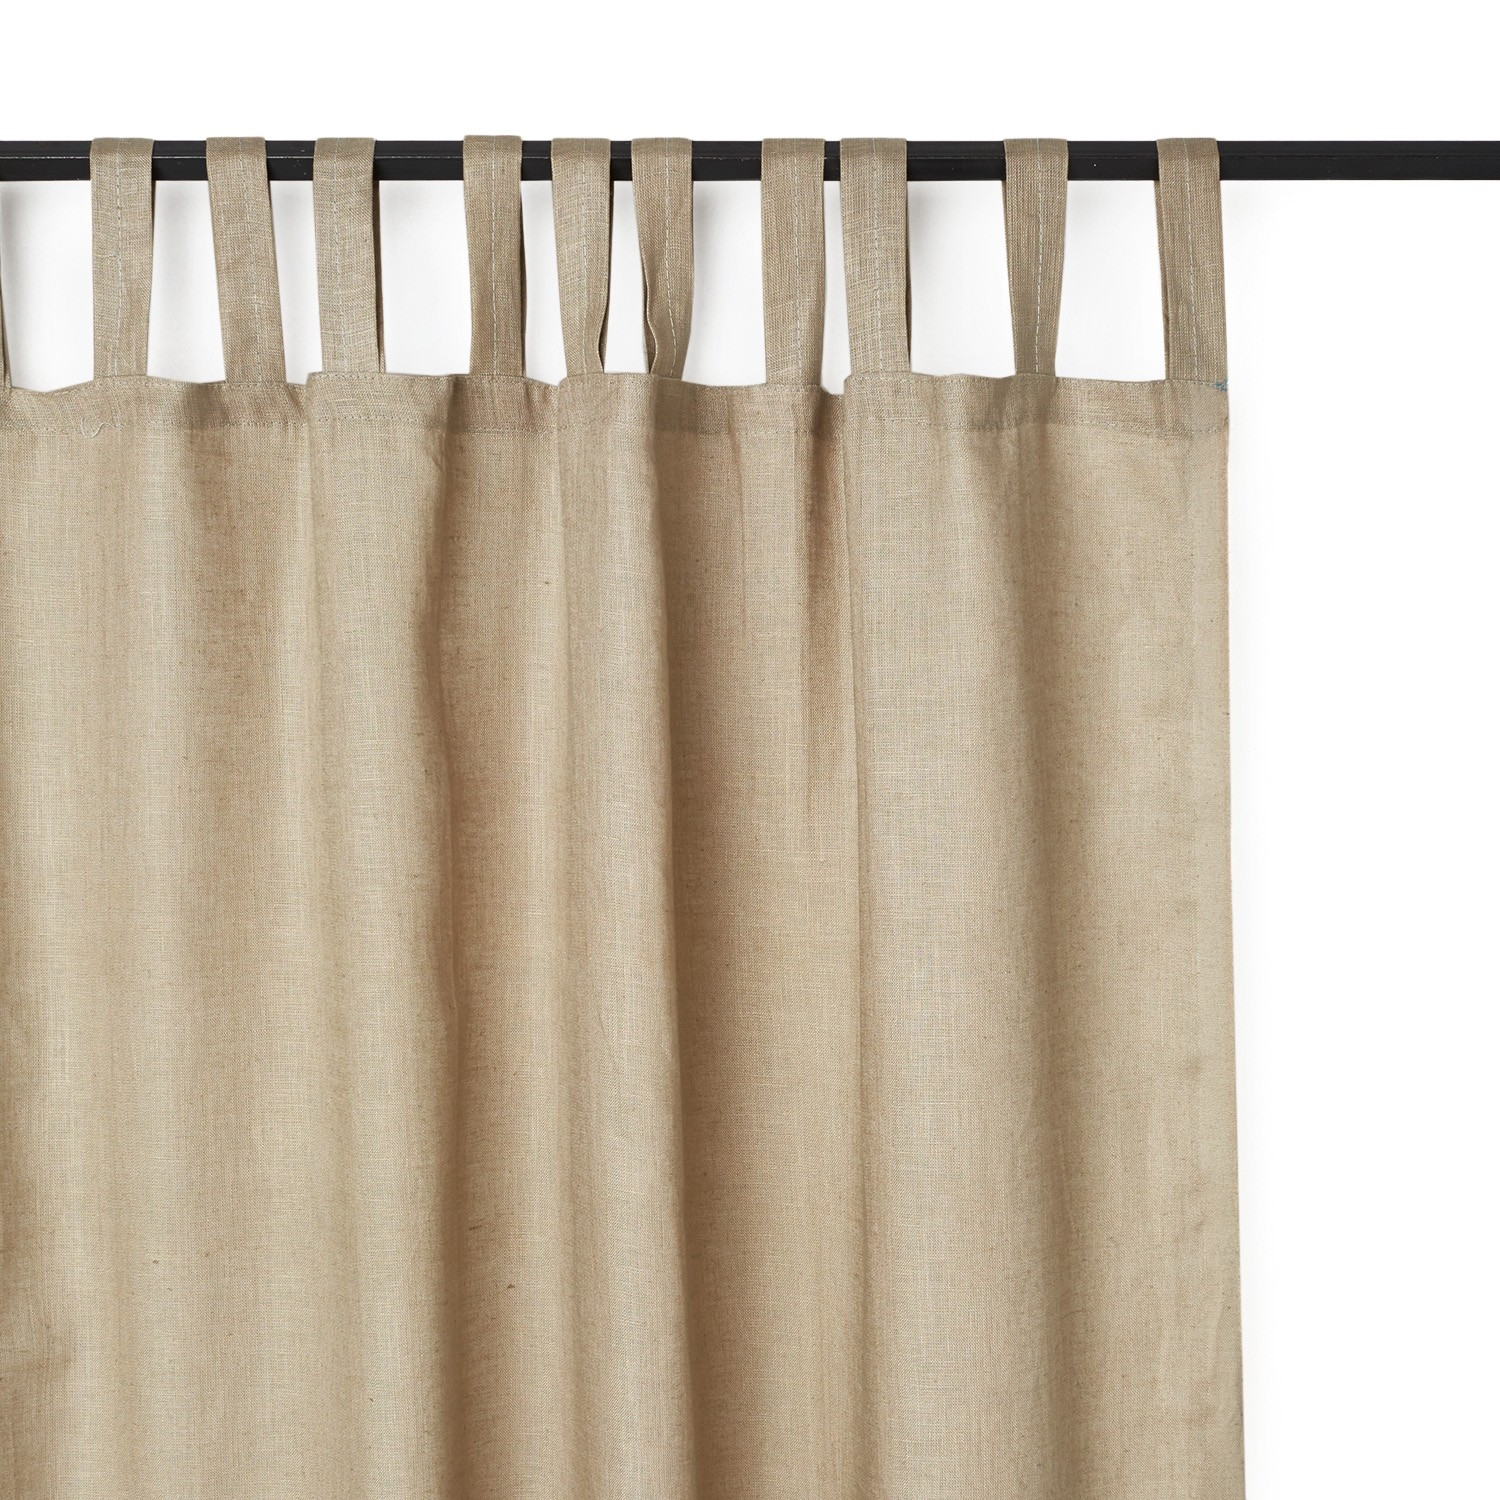 Featured Image of Plain Linen Curtains